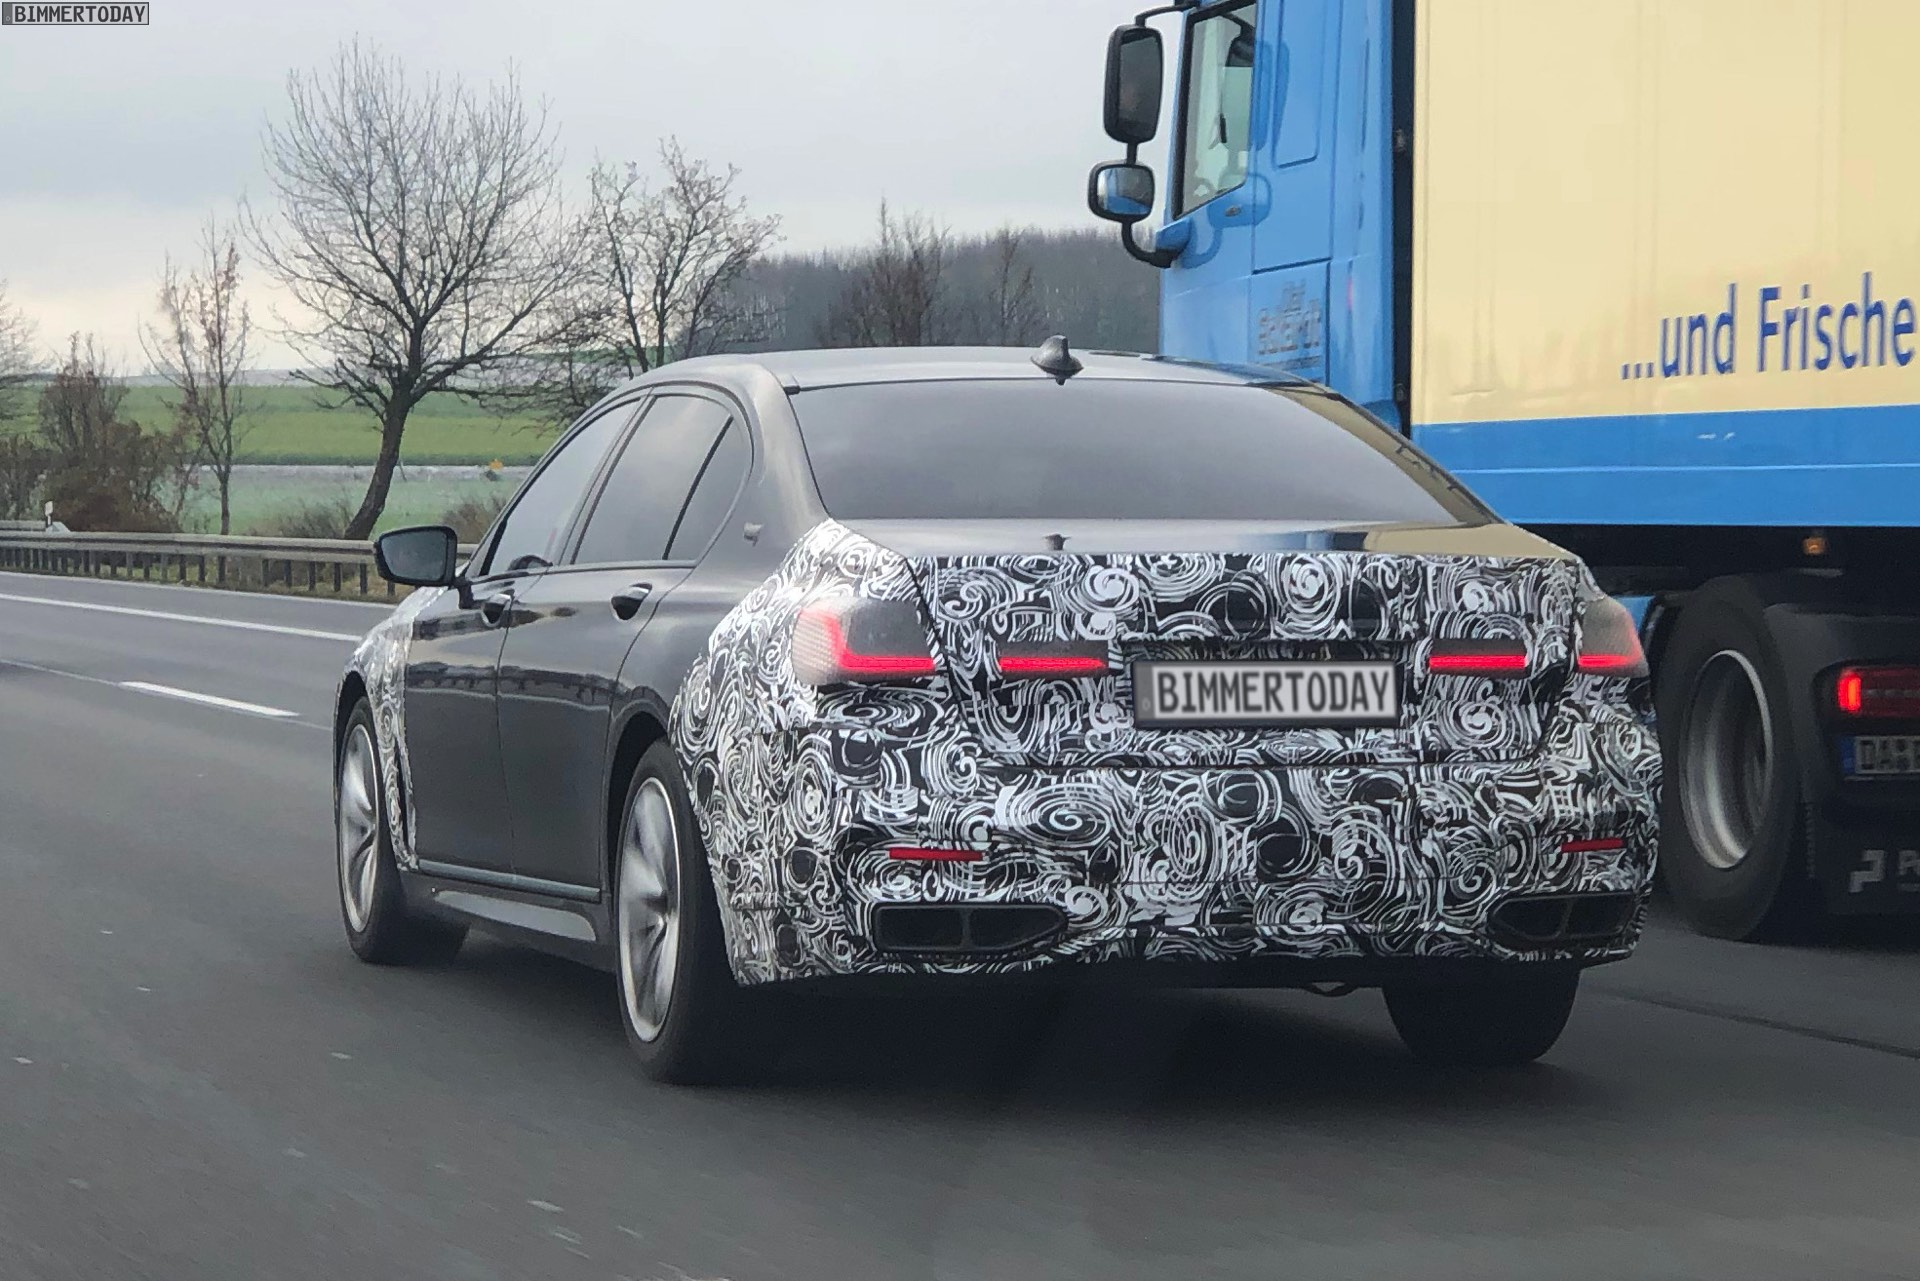 2019 Bmw 7 Series Facelift Spy Photos Show The Design Updates